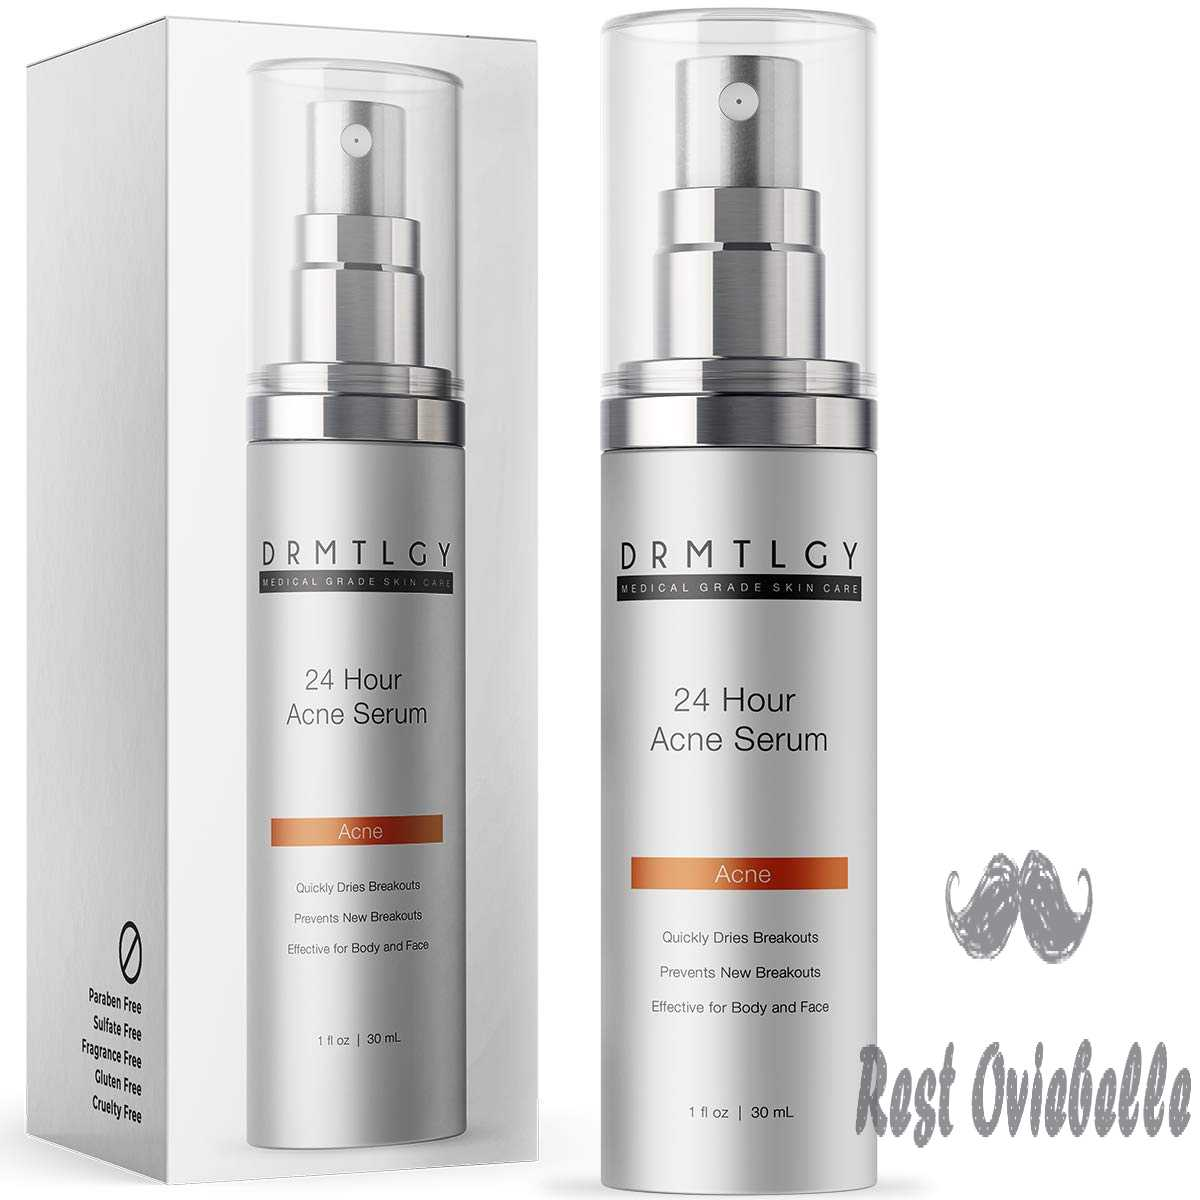 DRMTLGY Acne Spot Treatment and